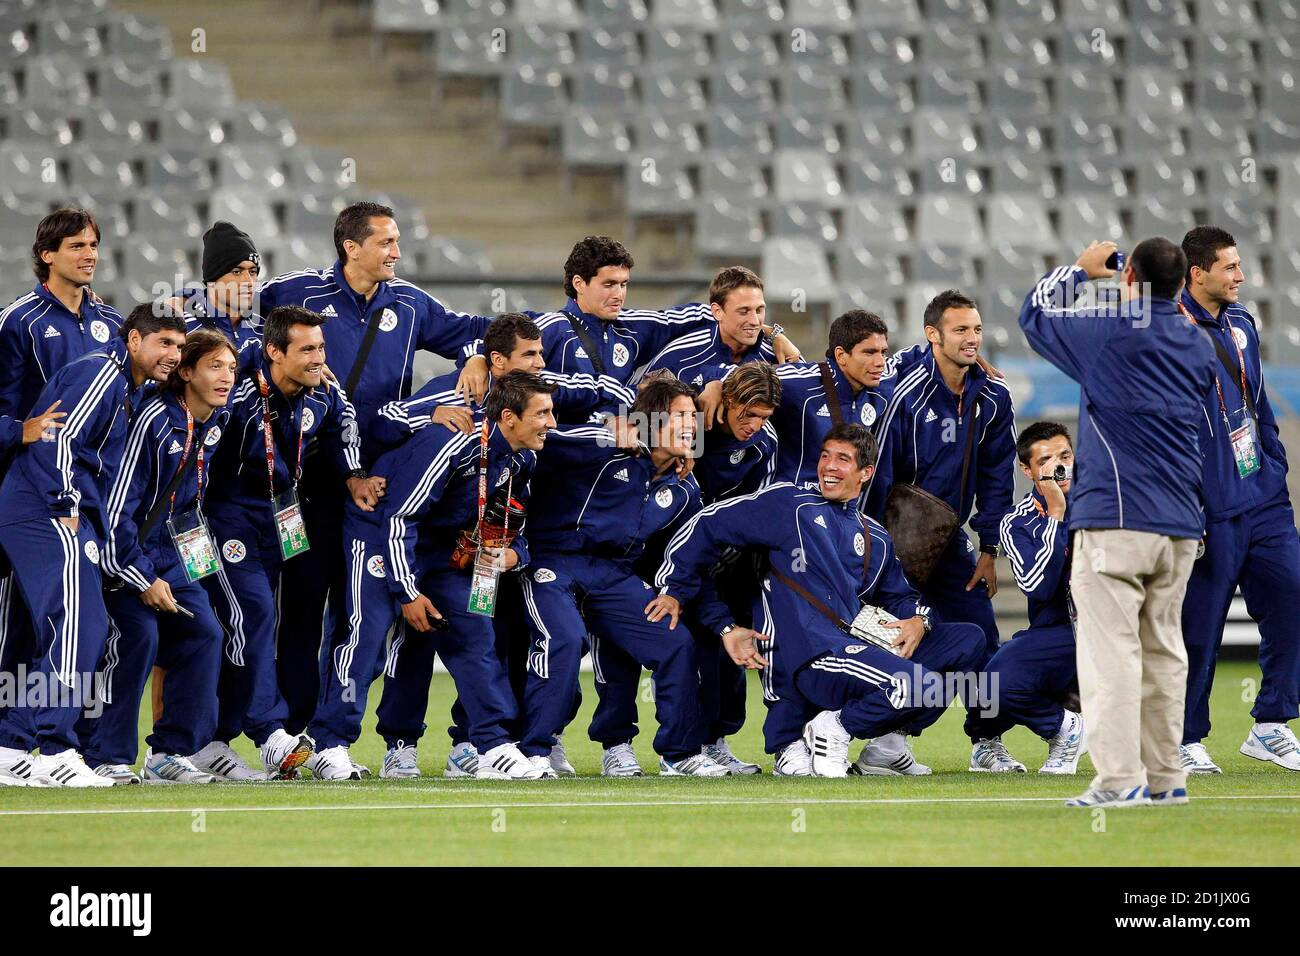 Members of Paraguay's national soccer team pose for a group picture during a visit to the Green Point stadium in Cape Town June 13, 2010.  REUTERS/Carlos Barria (SOUTH AFRICA - Tags: SPORT SOCCER WORLD CUP) Stock Photo